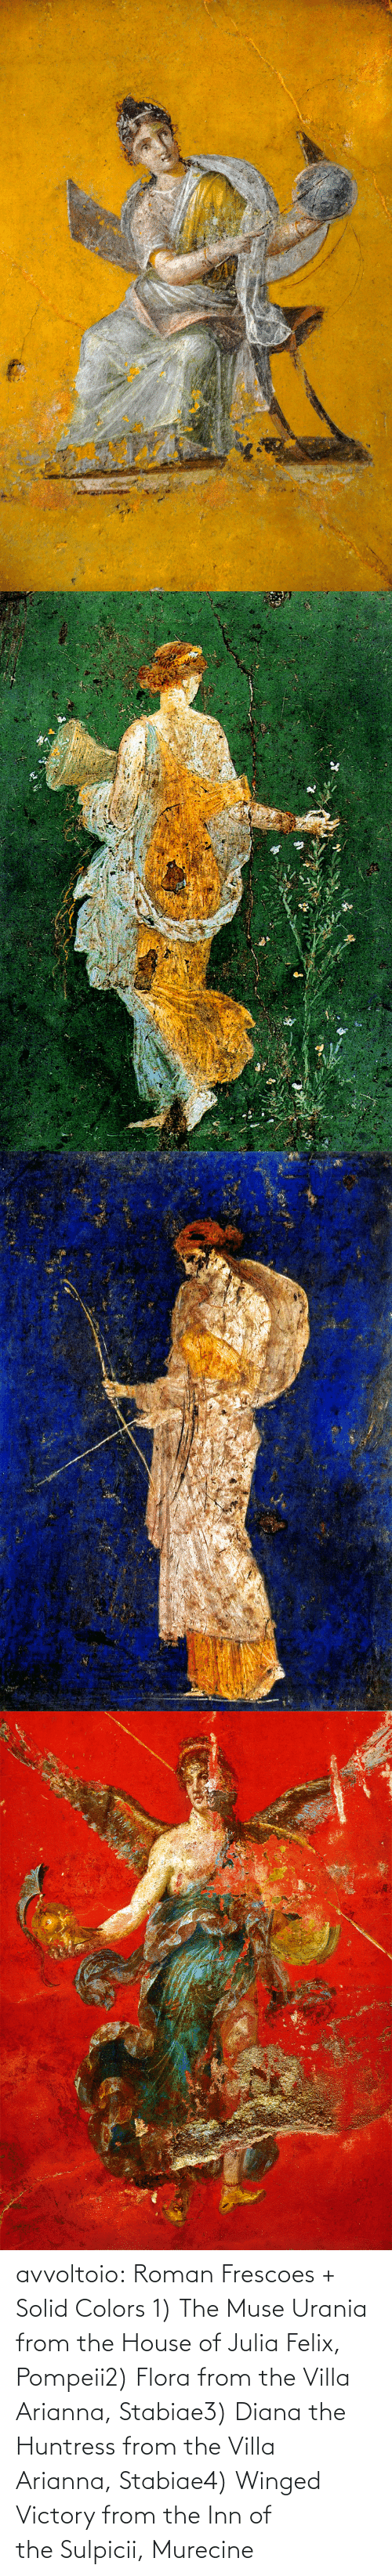 House: avvoltoio: Roman Frescoes + Solid Colors 1) The Muse Urania from the House of Julia Felix, Pompeii2) Flora from the Villa Arianna, Stabiae3) Diana the Huntress from the Villa Arianna, Stabiae4) Winged Victory from the Inn of the Sulpicii, Murecine